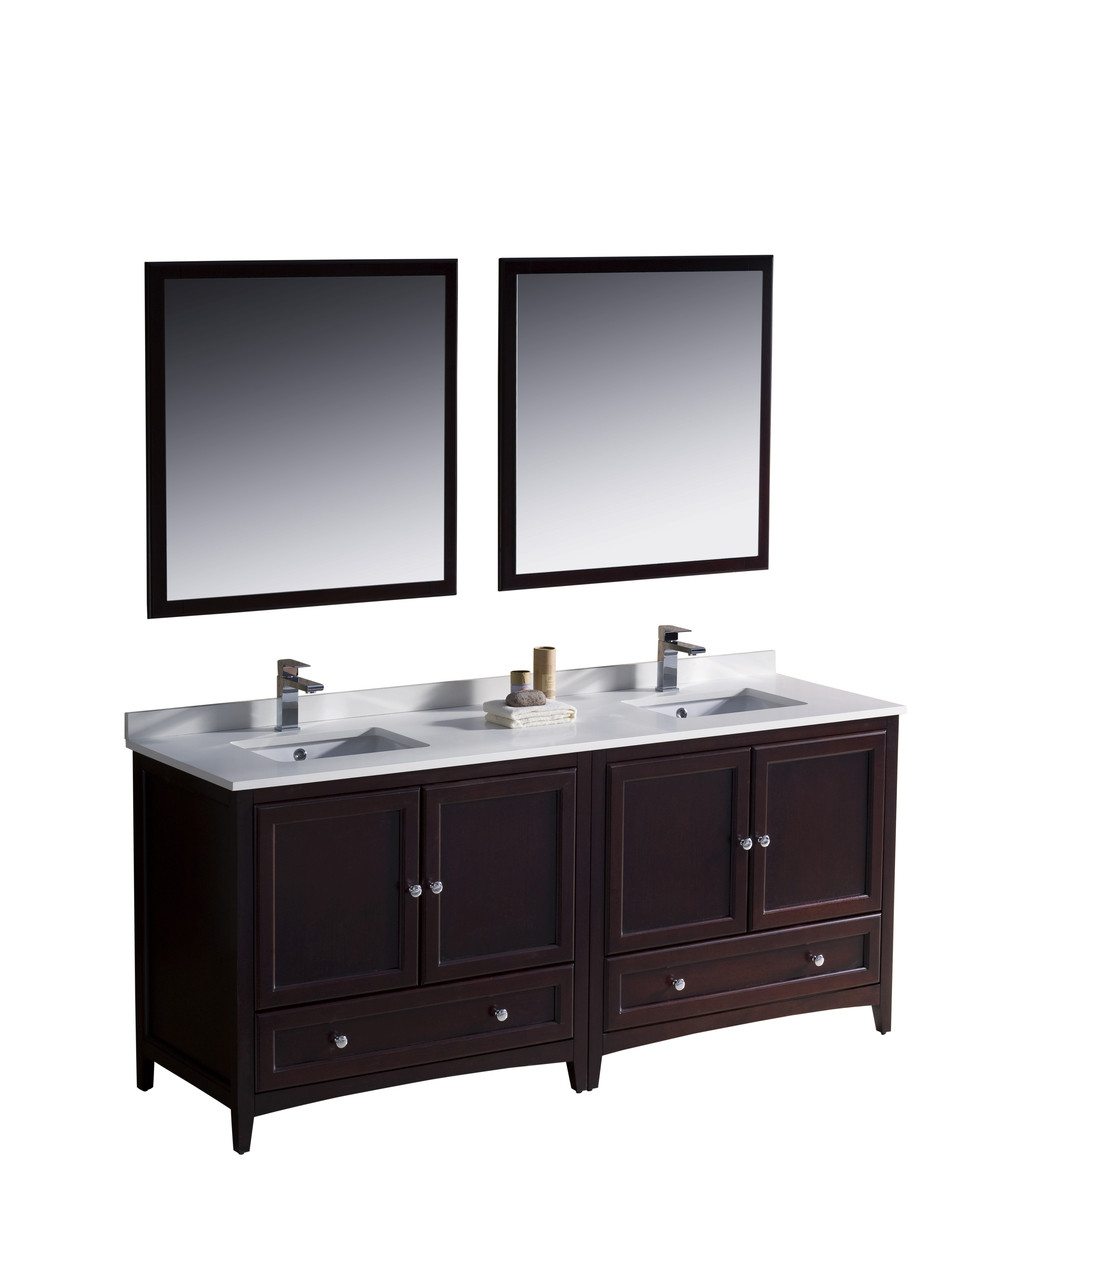 Fvn20 3636mh fresca oxford 72 mahogany traditional double sink bathroom vanity - Traditional bathroom vanities double sink ...